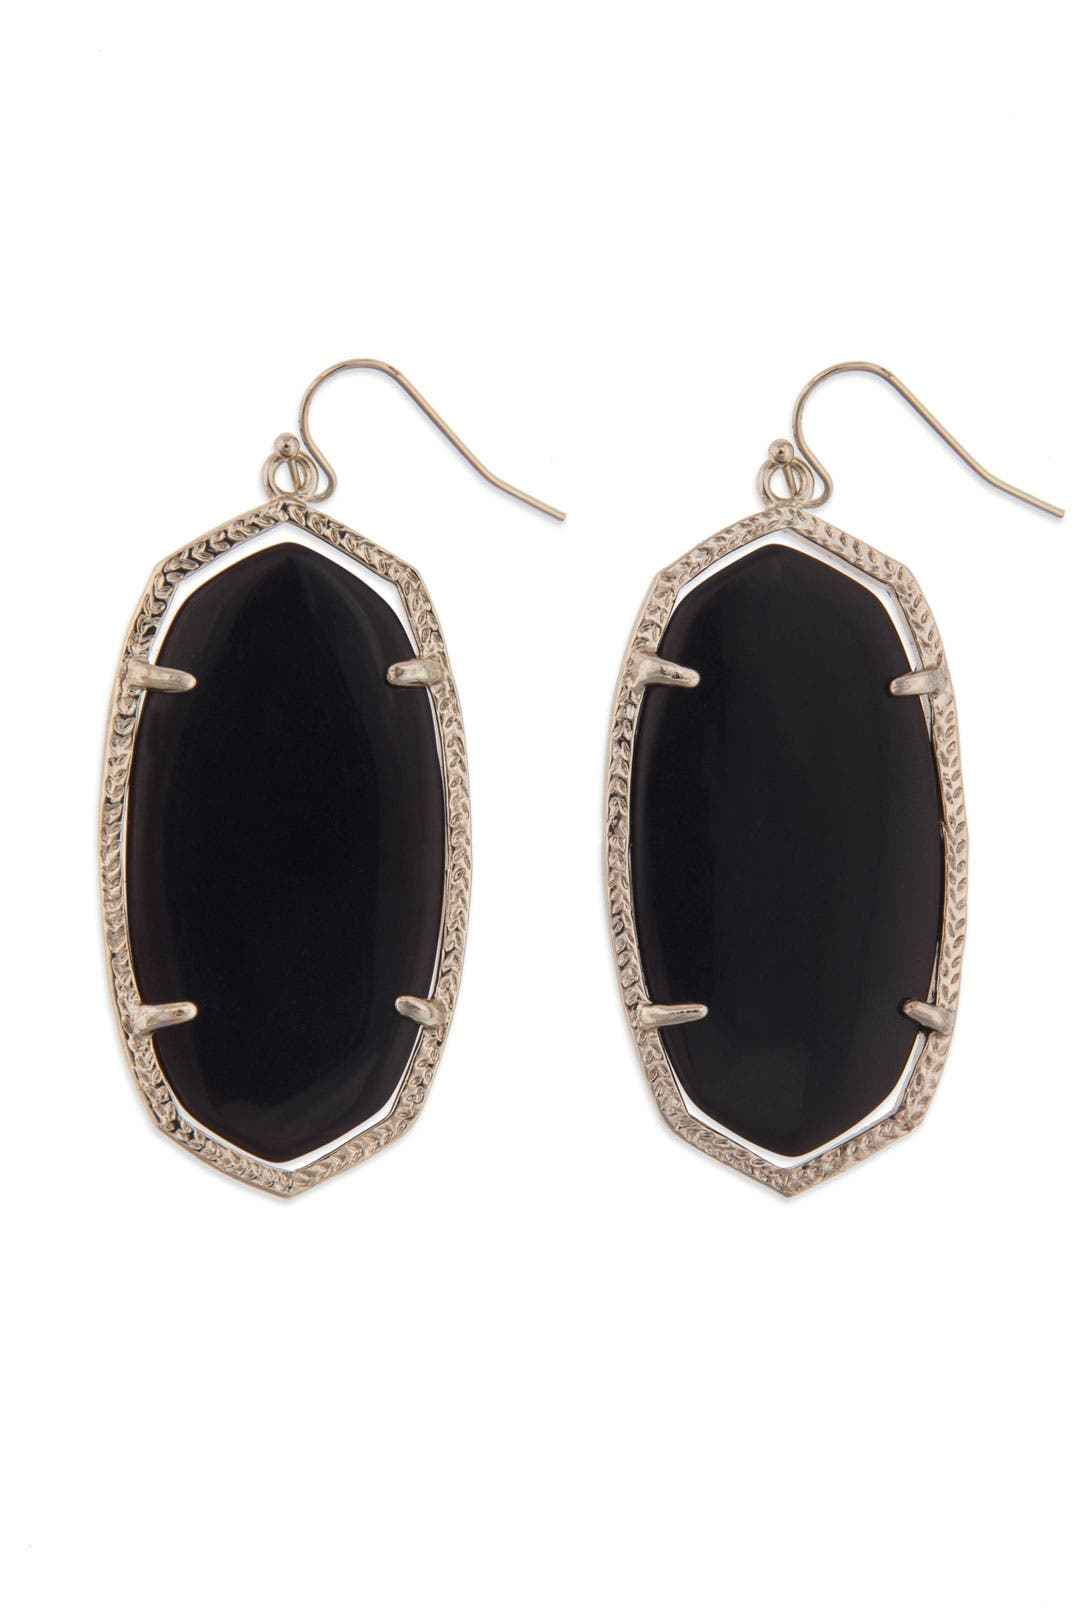 Black Onyx Danielle Earring by Kendra Scott